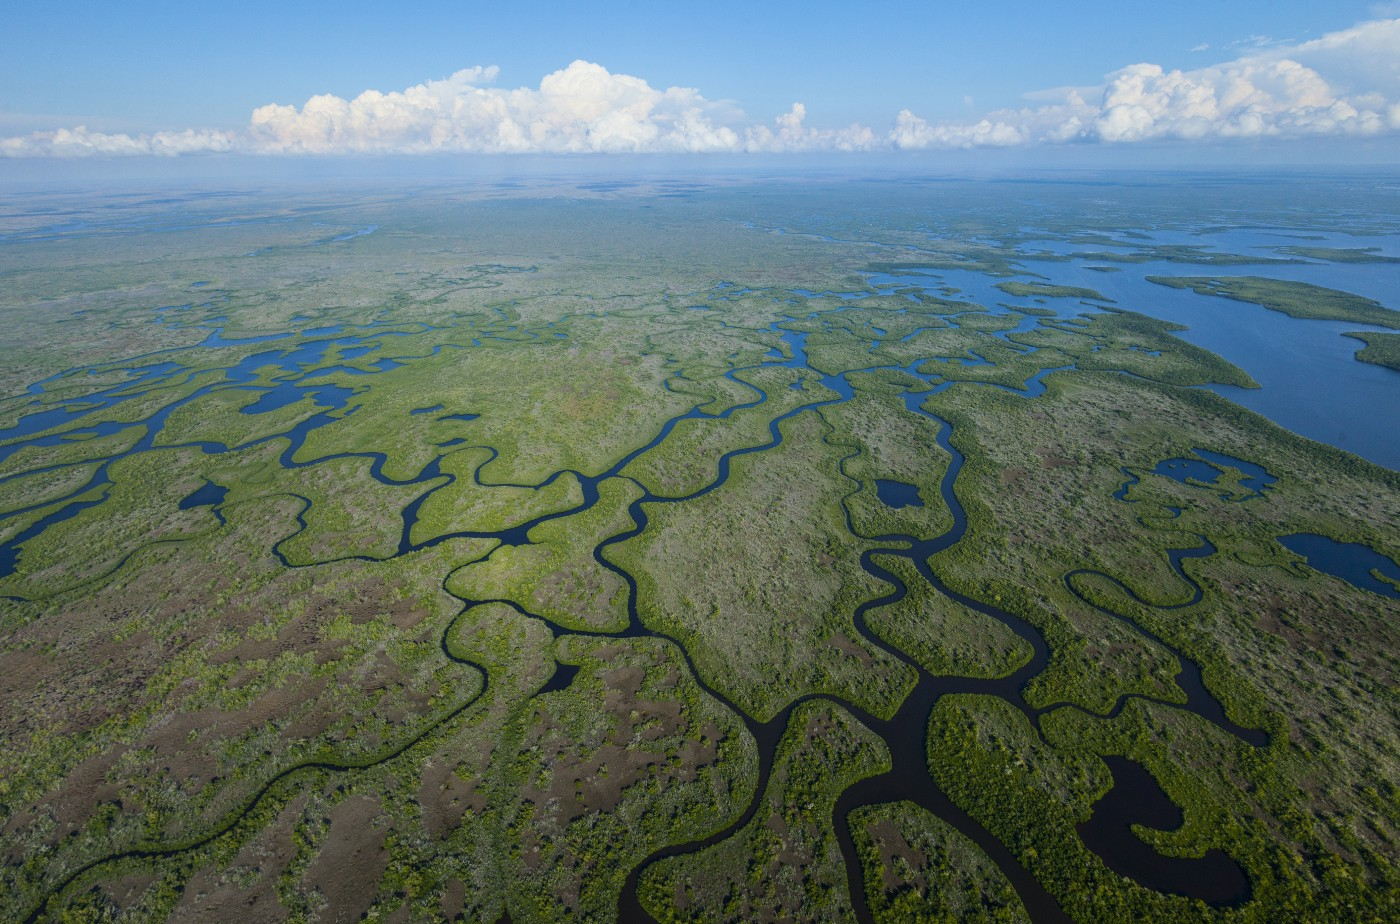 Everglades from above